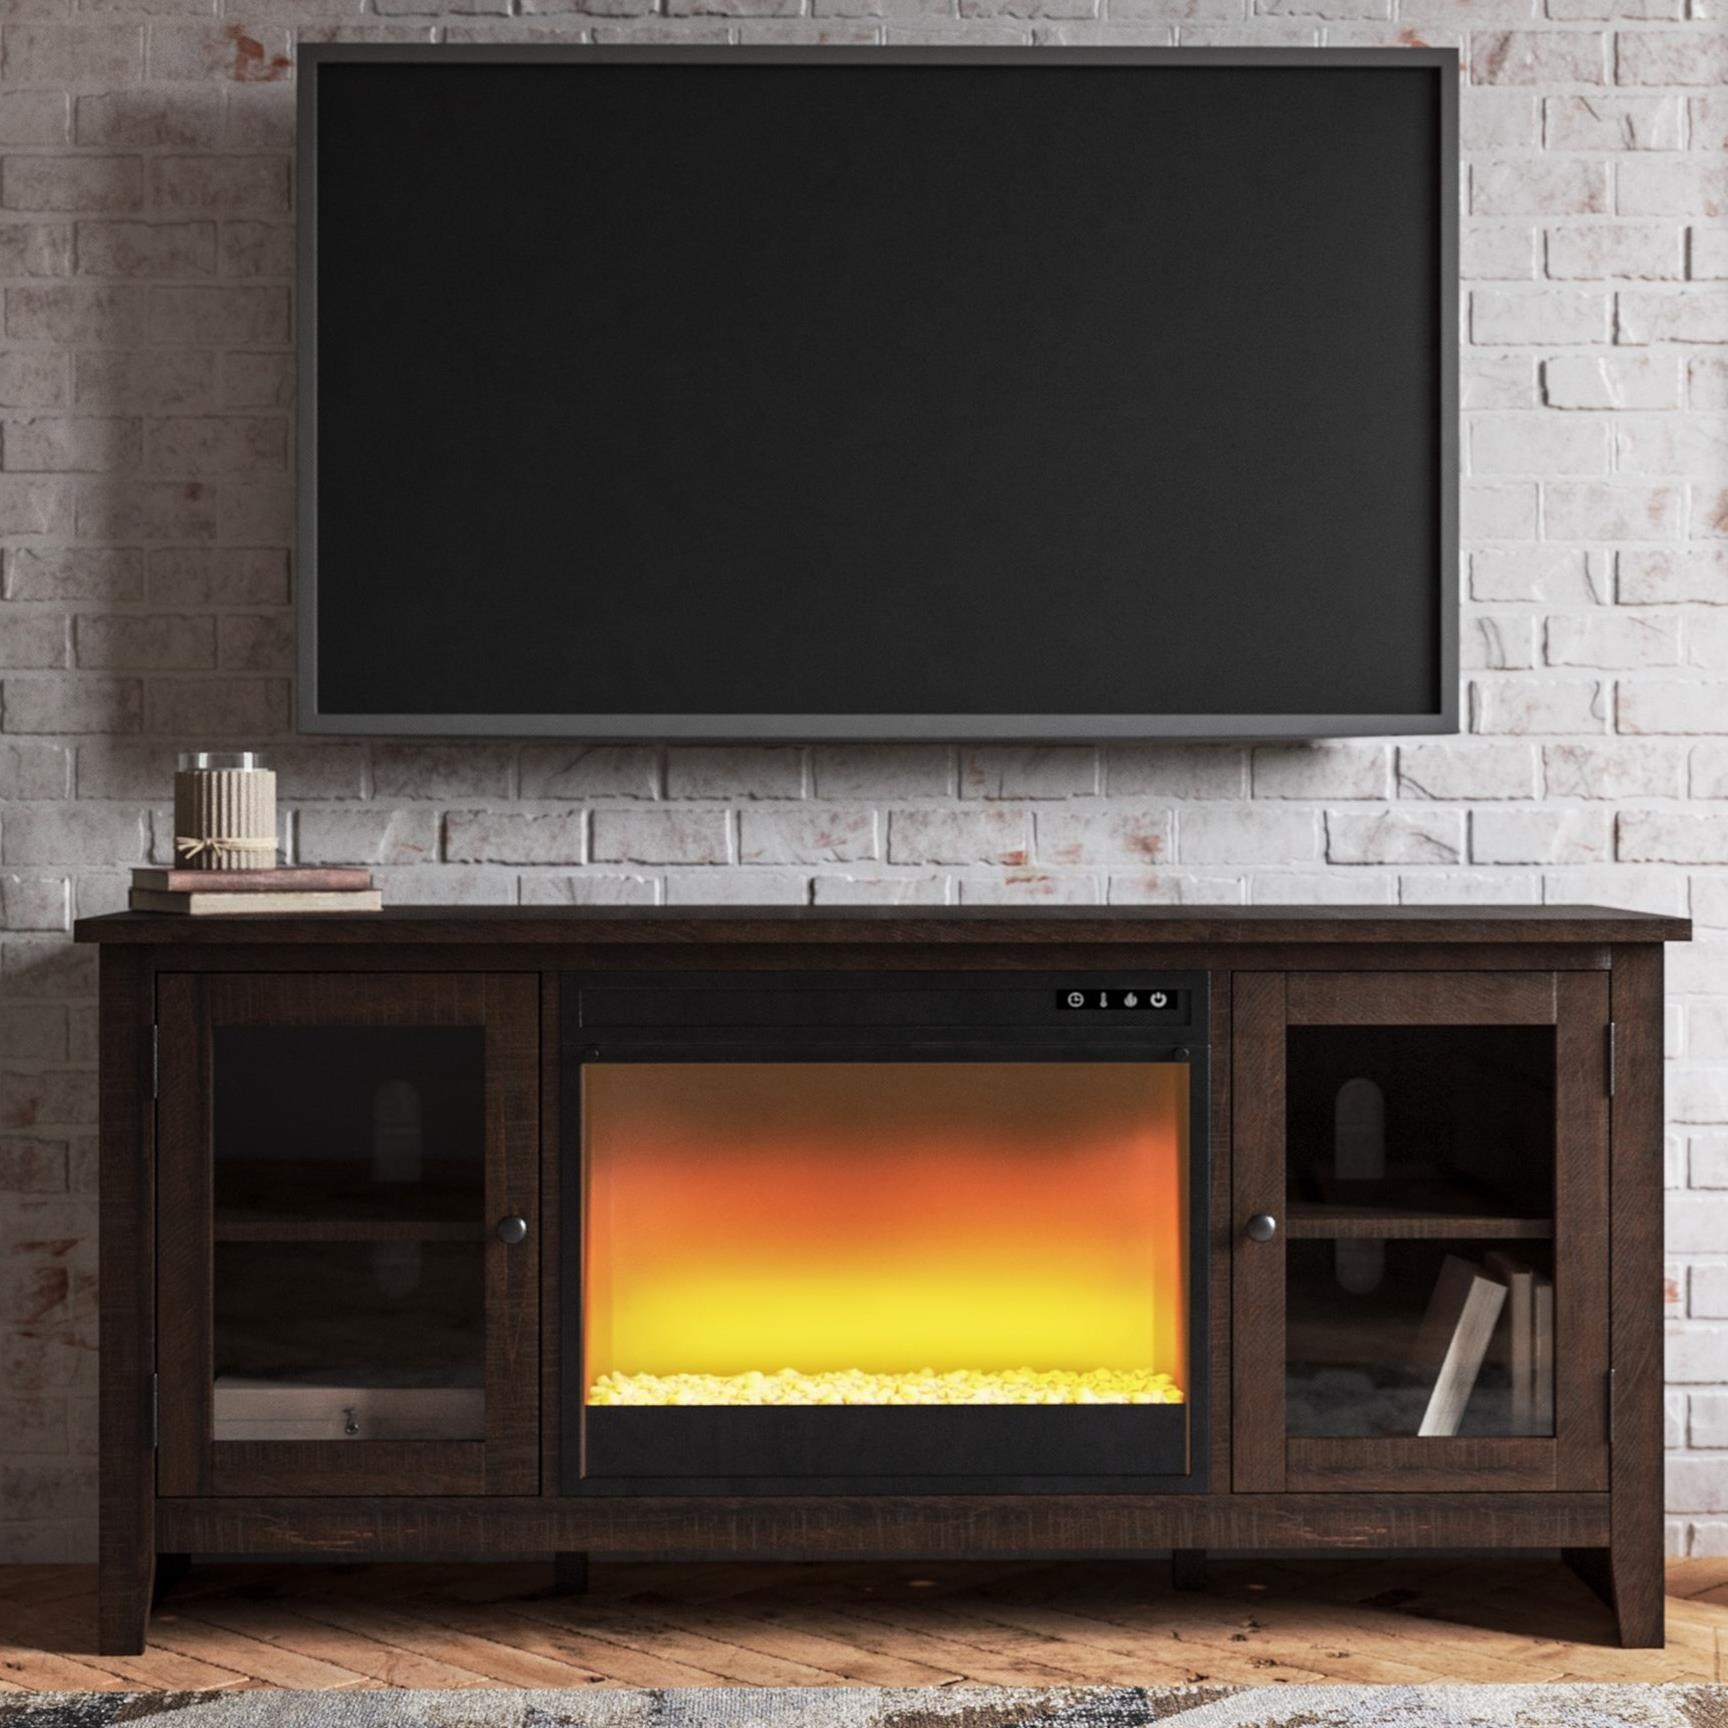 Camiburg Large TV Stand w/ Fireplace Insert by Signature Design by Ashley at Northeast Factory Direct